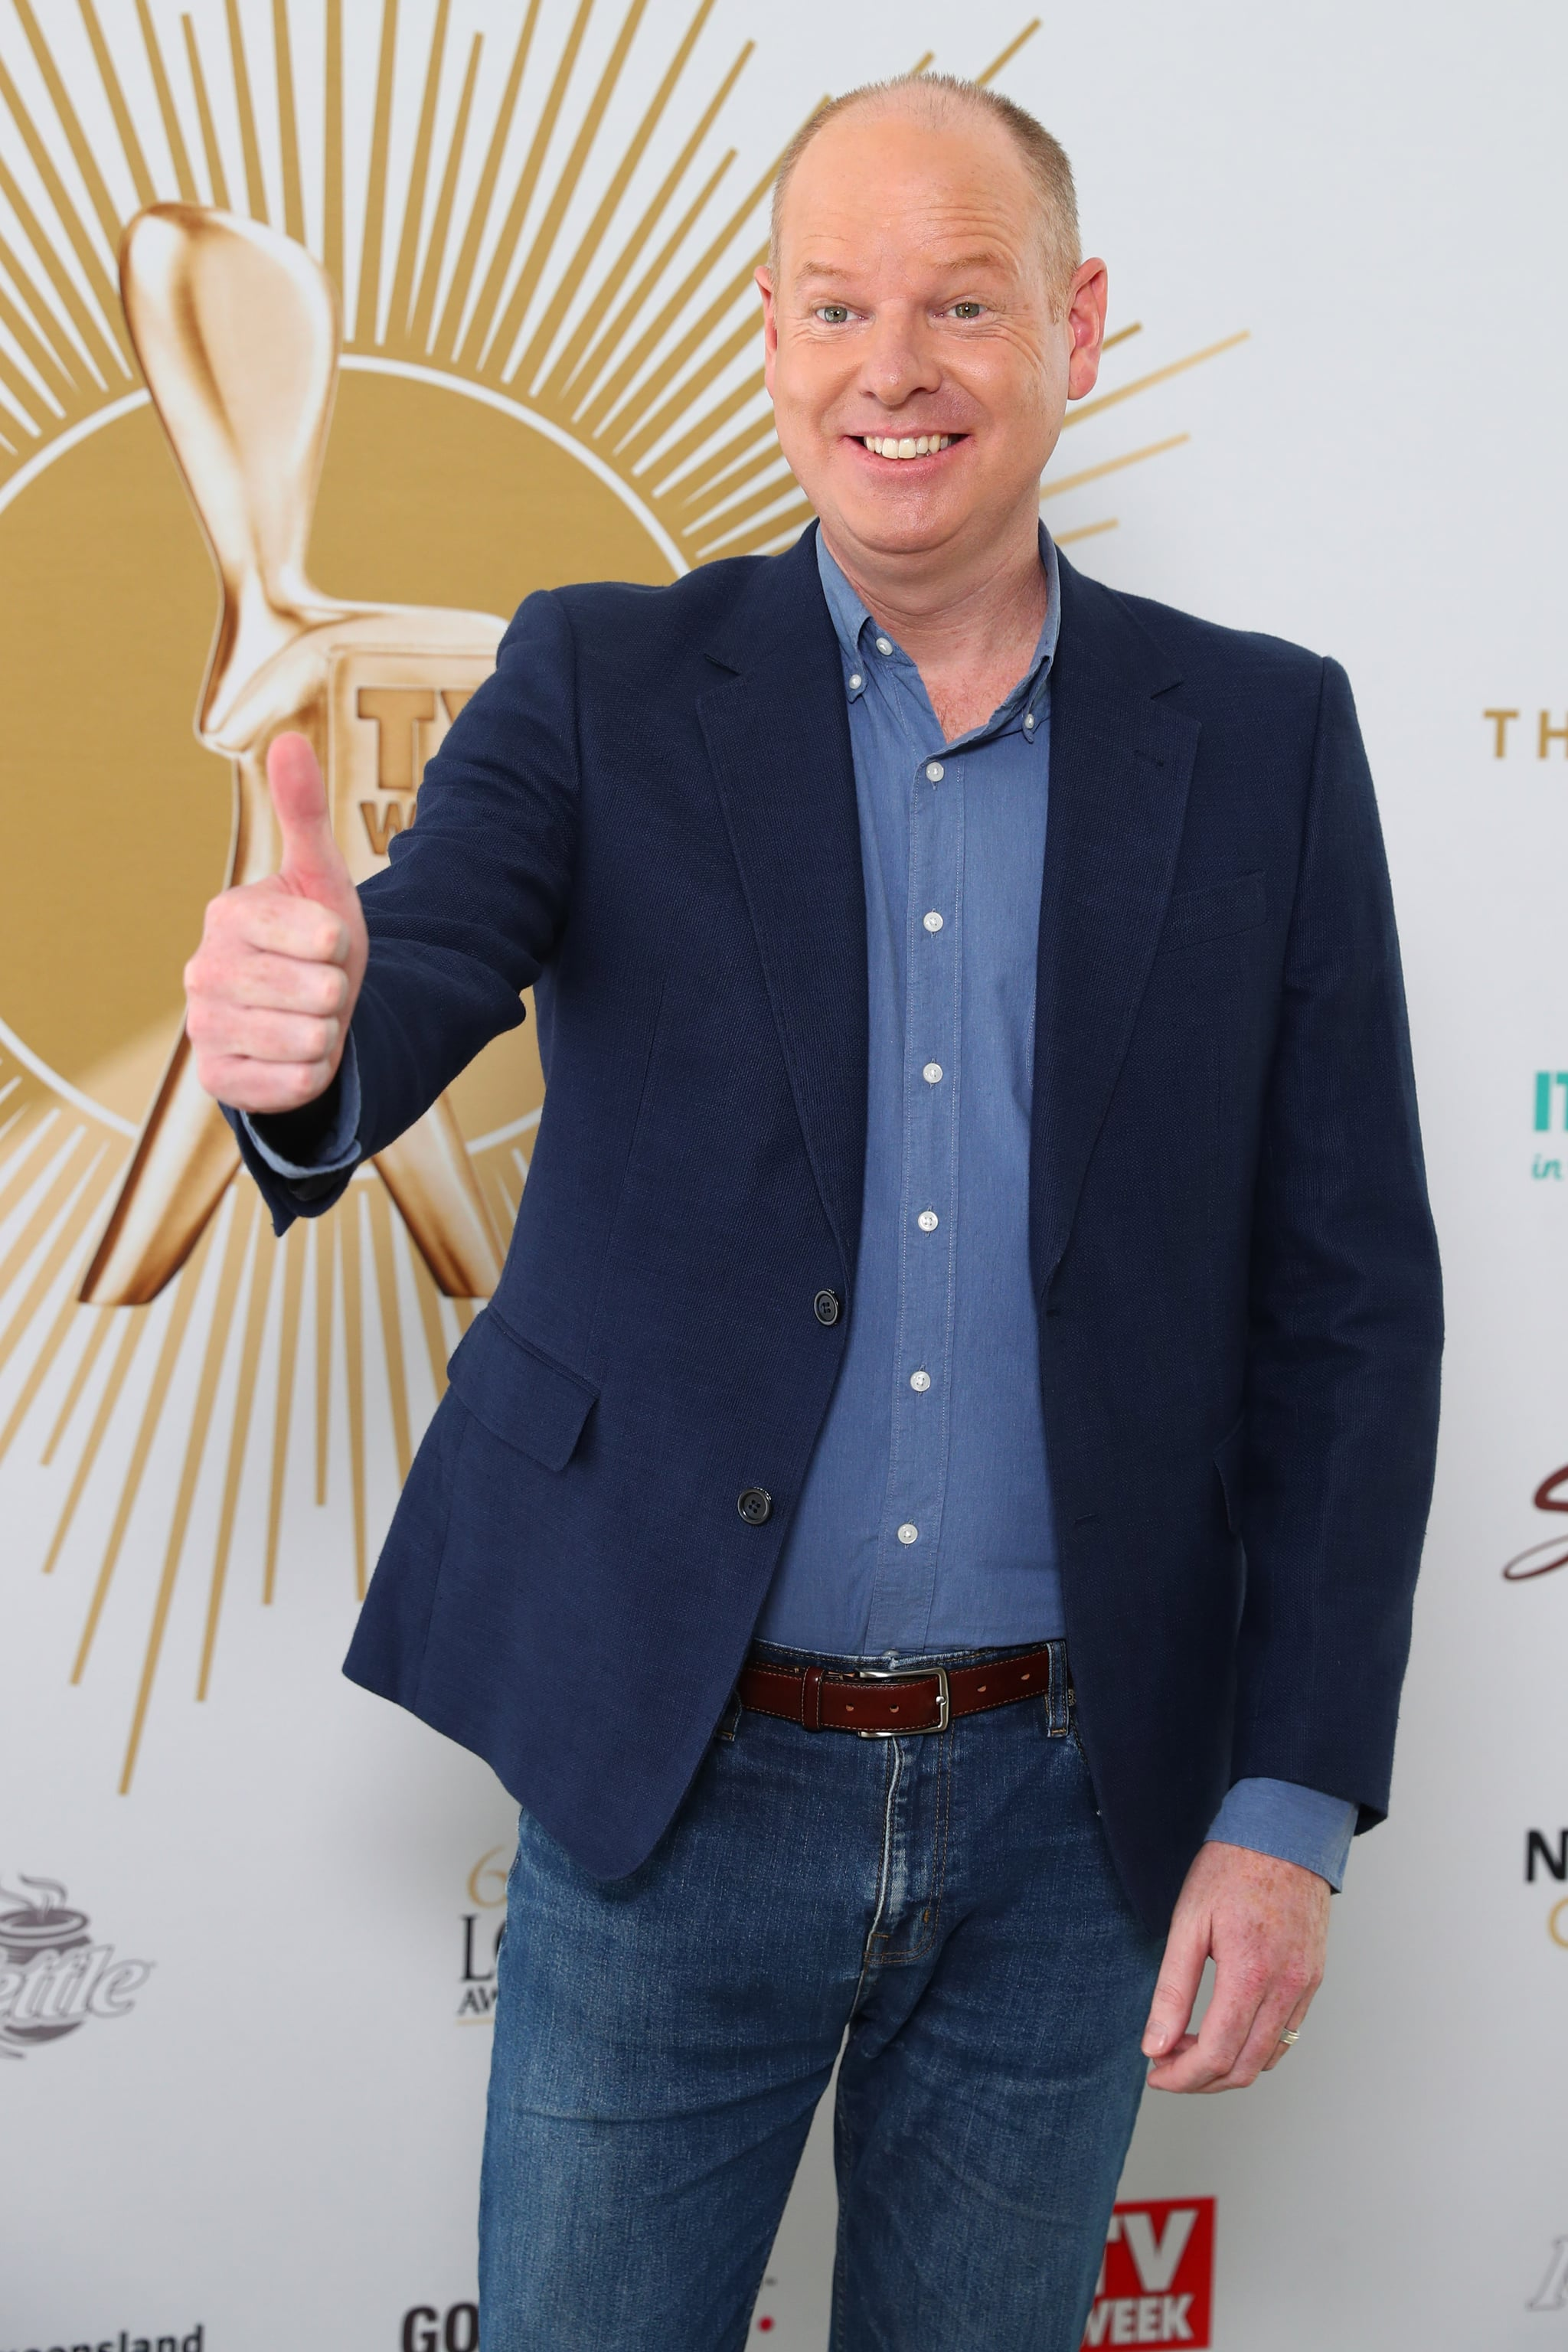 GOLD COAST, AUSTRALIA - MAY 26: Tom Gleeson Poses the 2019 TV WEEK Logie Awards Nominations Party at The Star Gold Coast on May 26, 2019 in Gold Coast, Australia. (Photo by Chris Hyde/Getty Images)